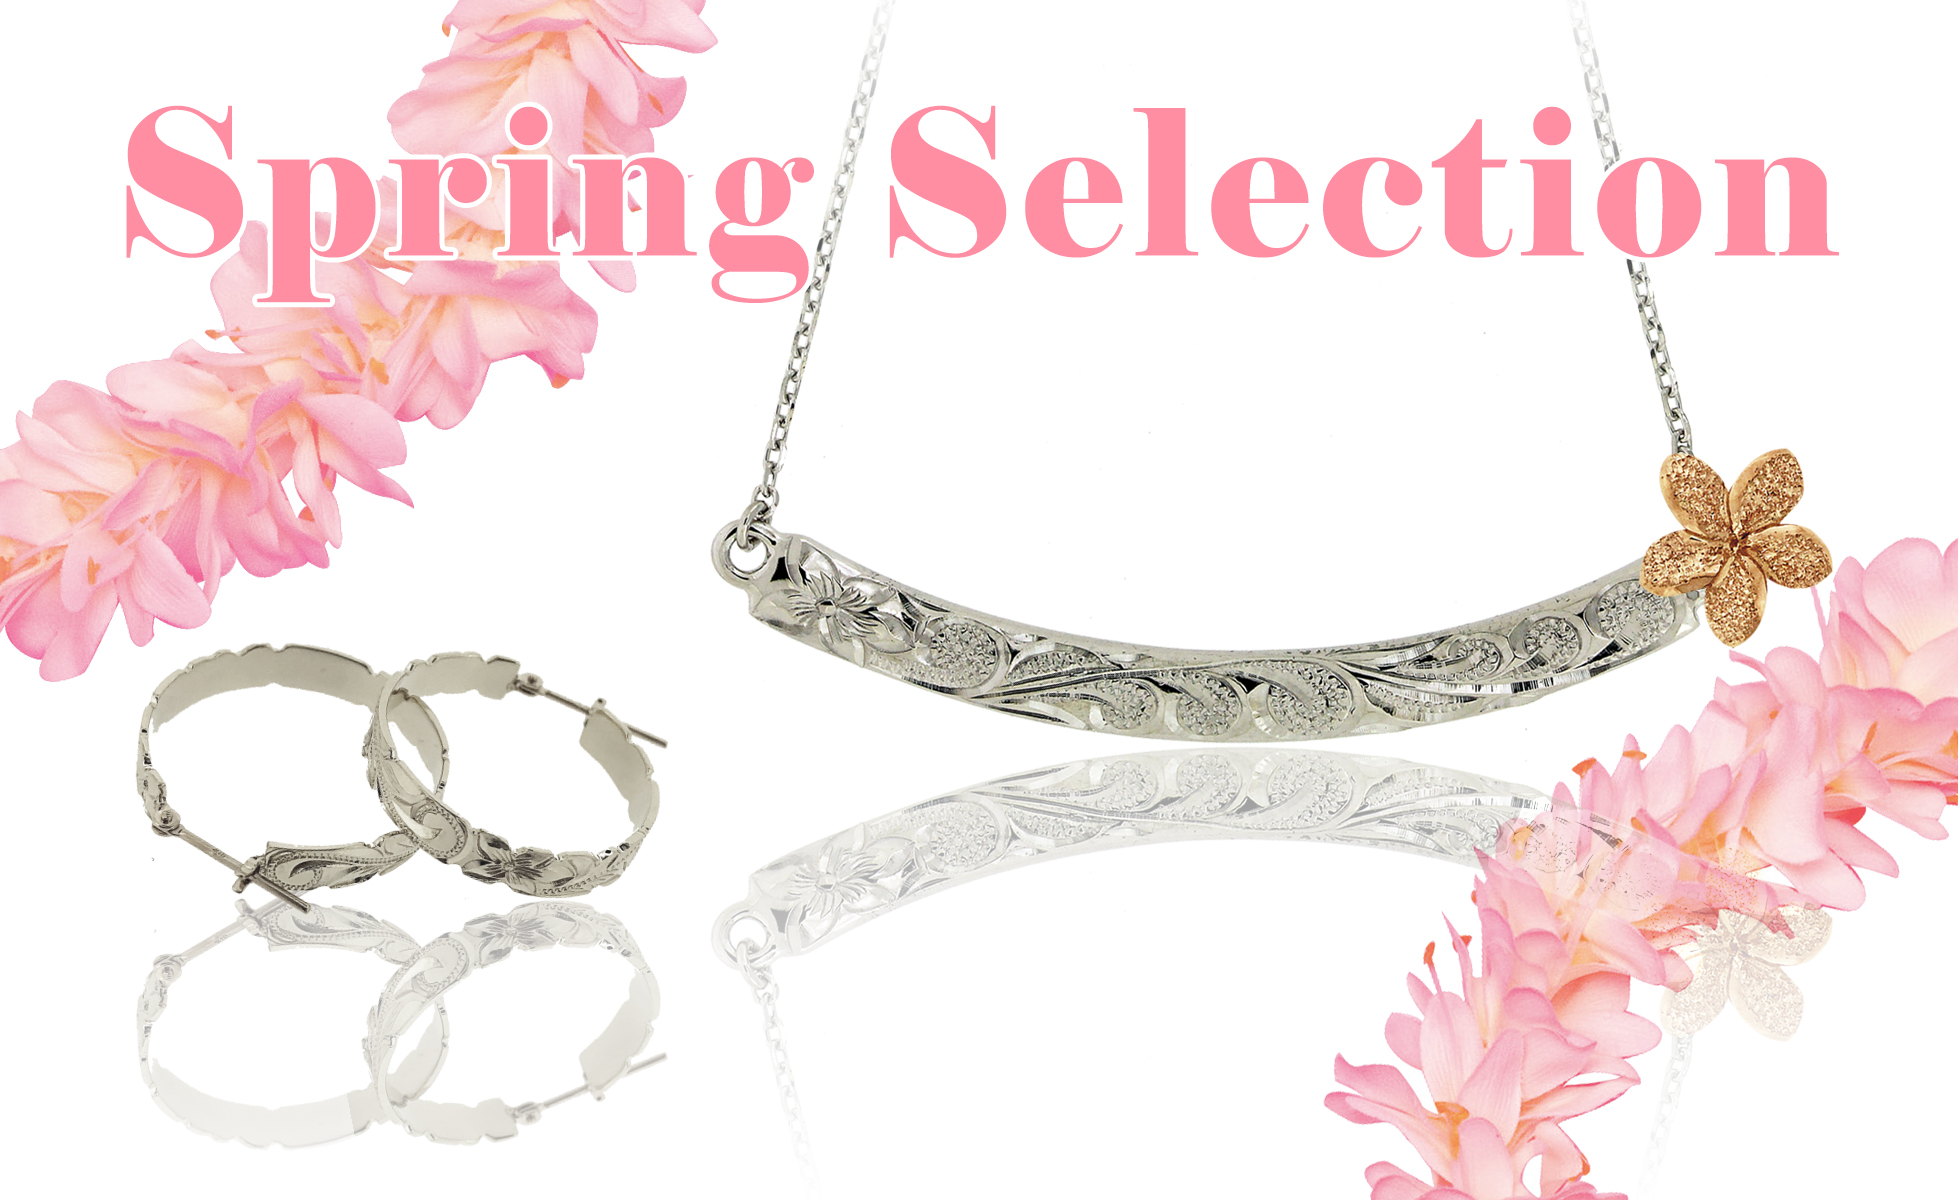 Spring selection